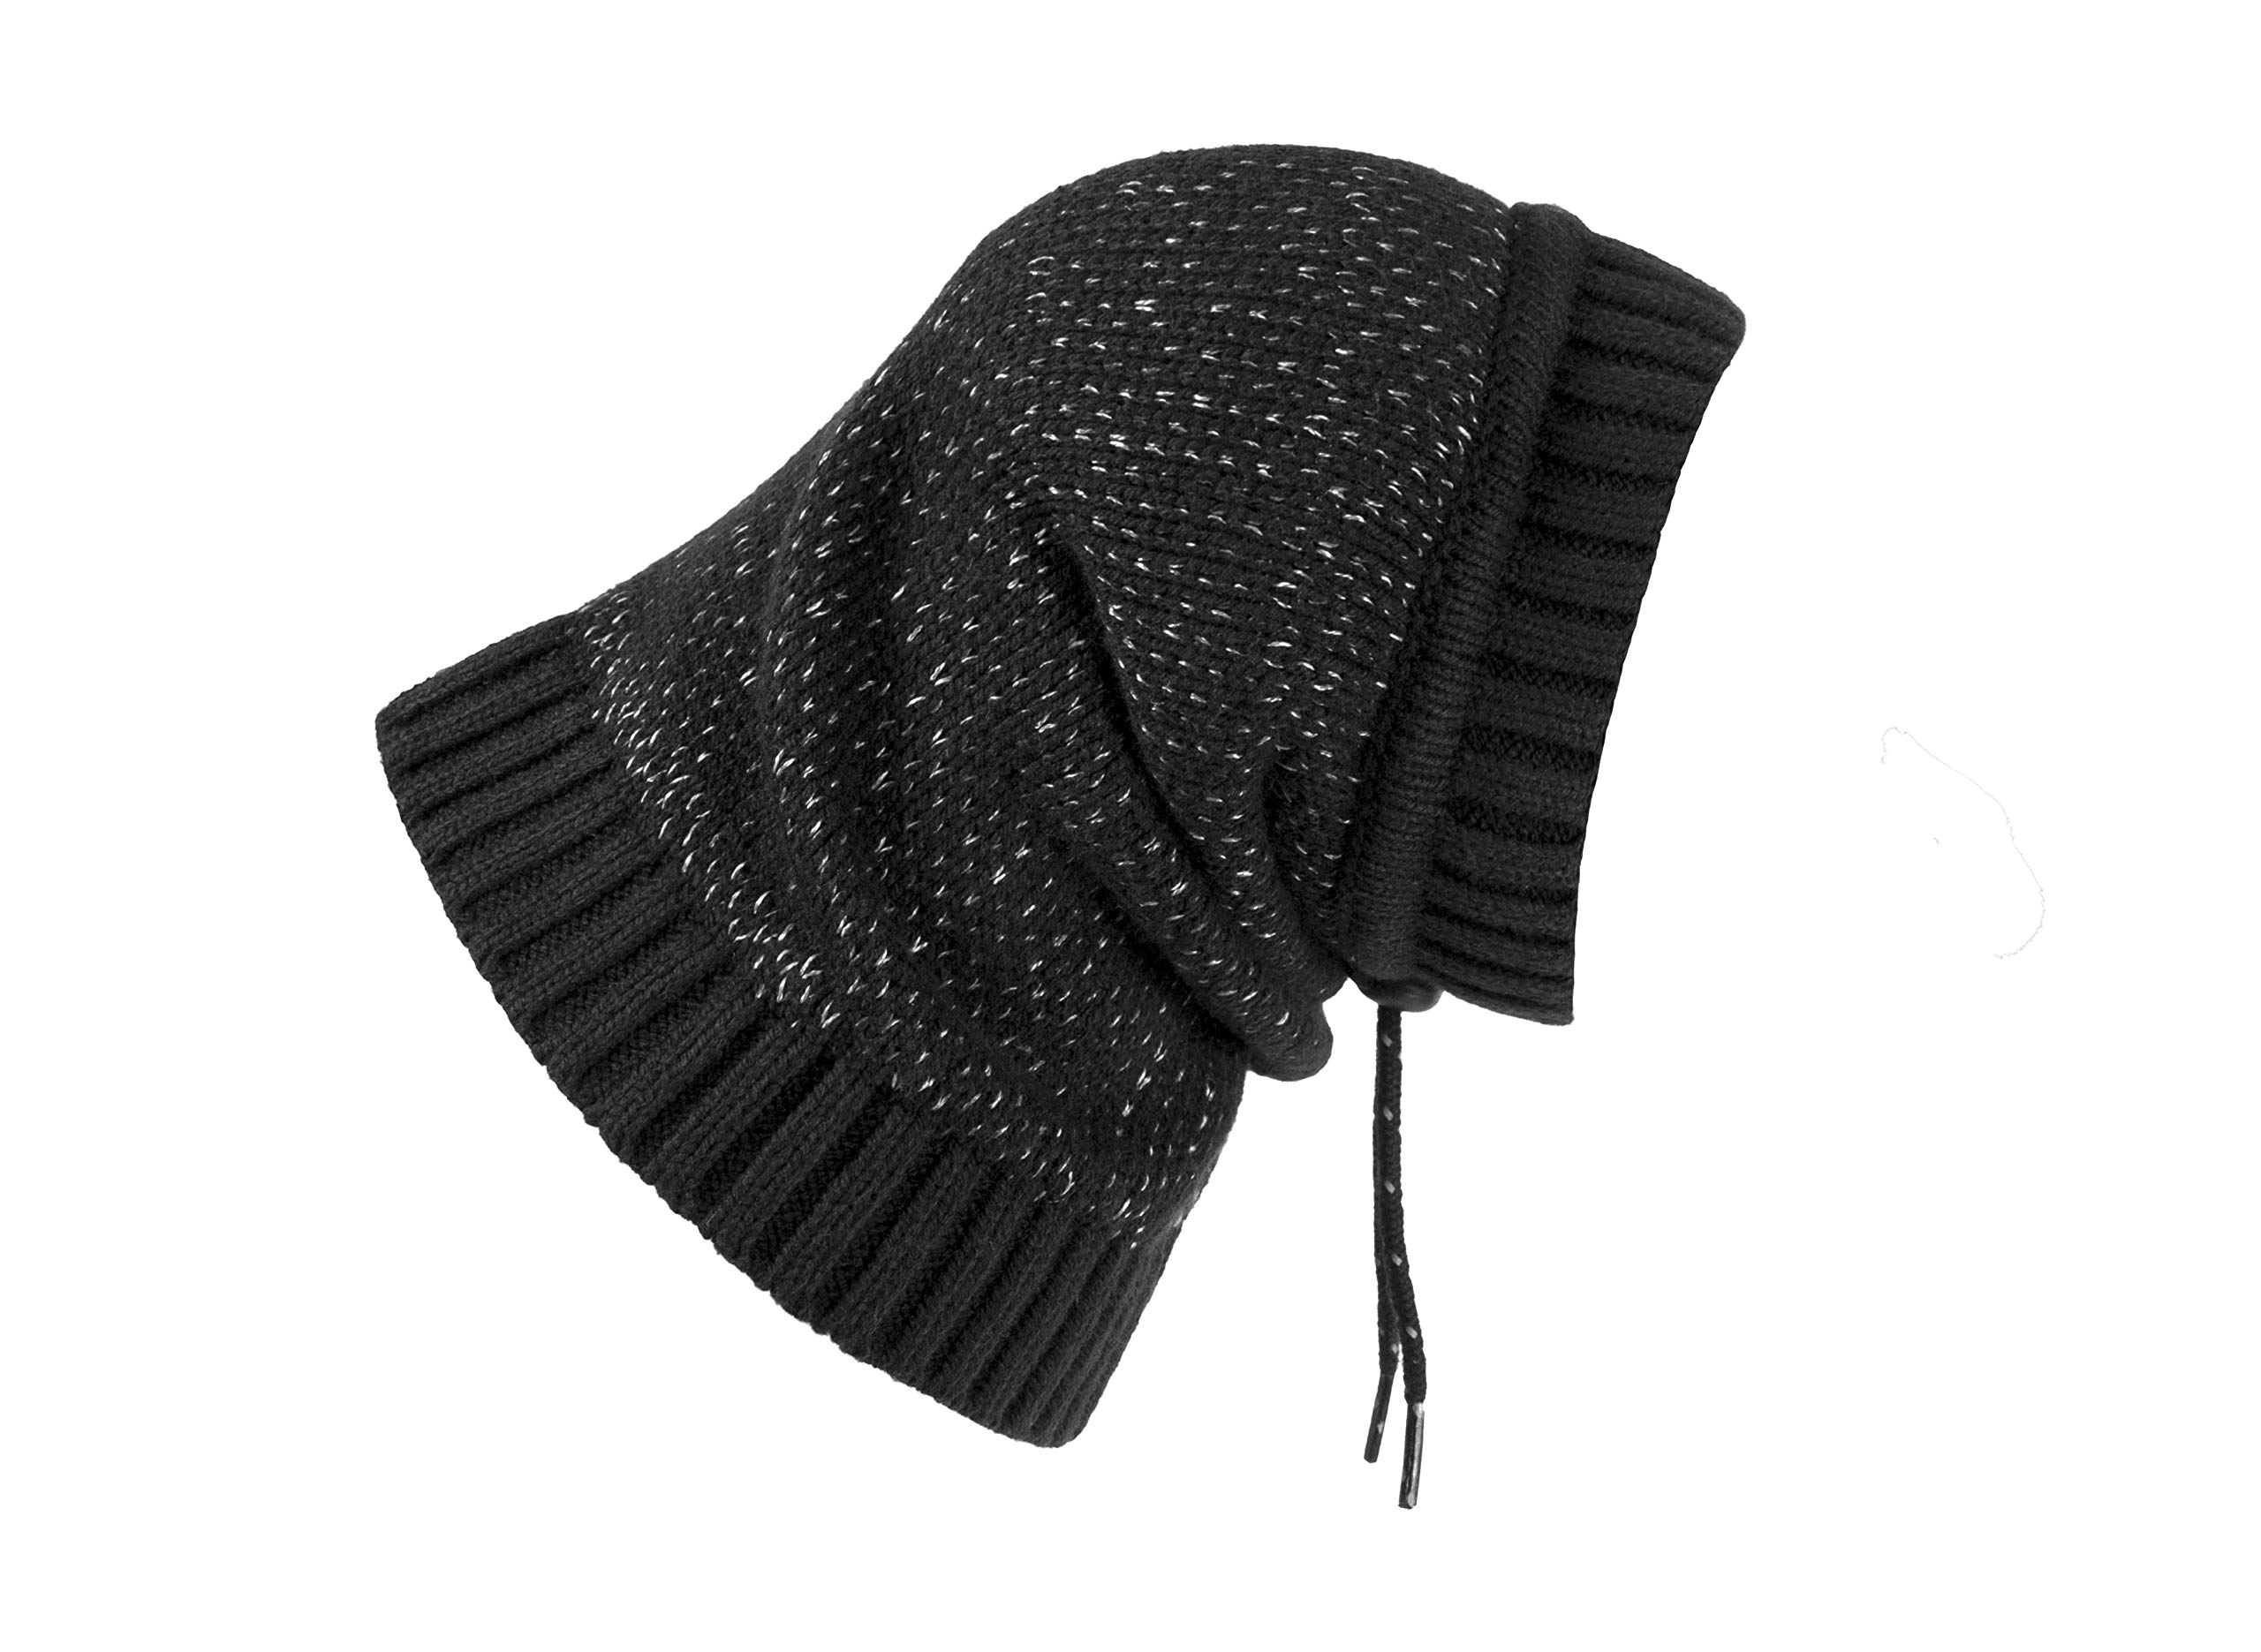 RC Pet Products 67005001 Polaris Snood Dog Neck Warmer, Black, Large by RC Pet Products